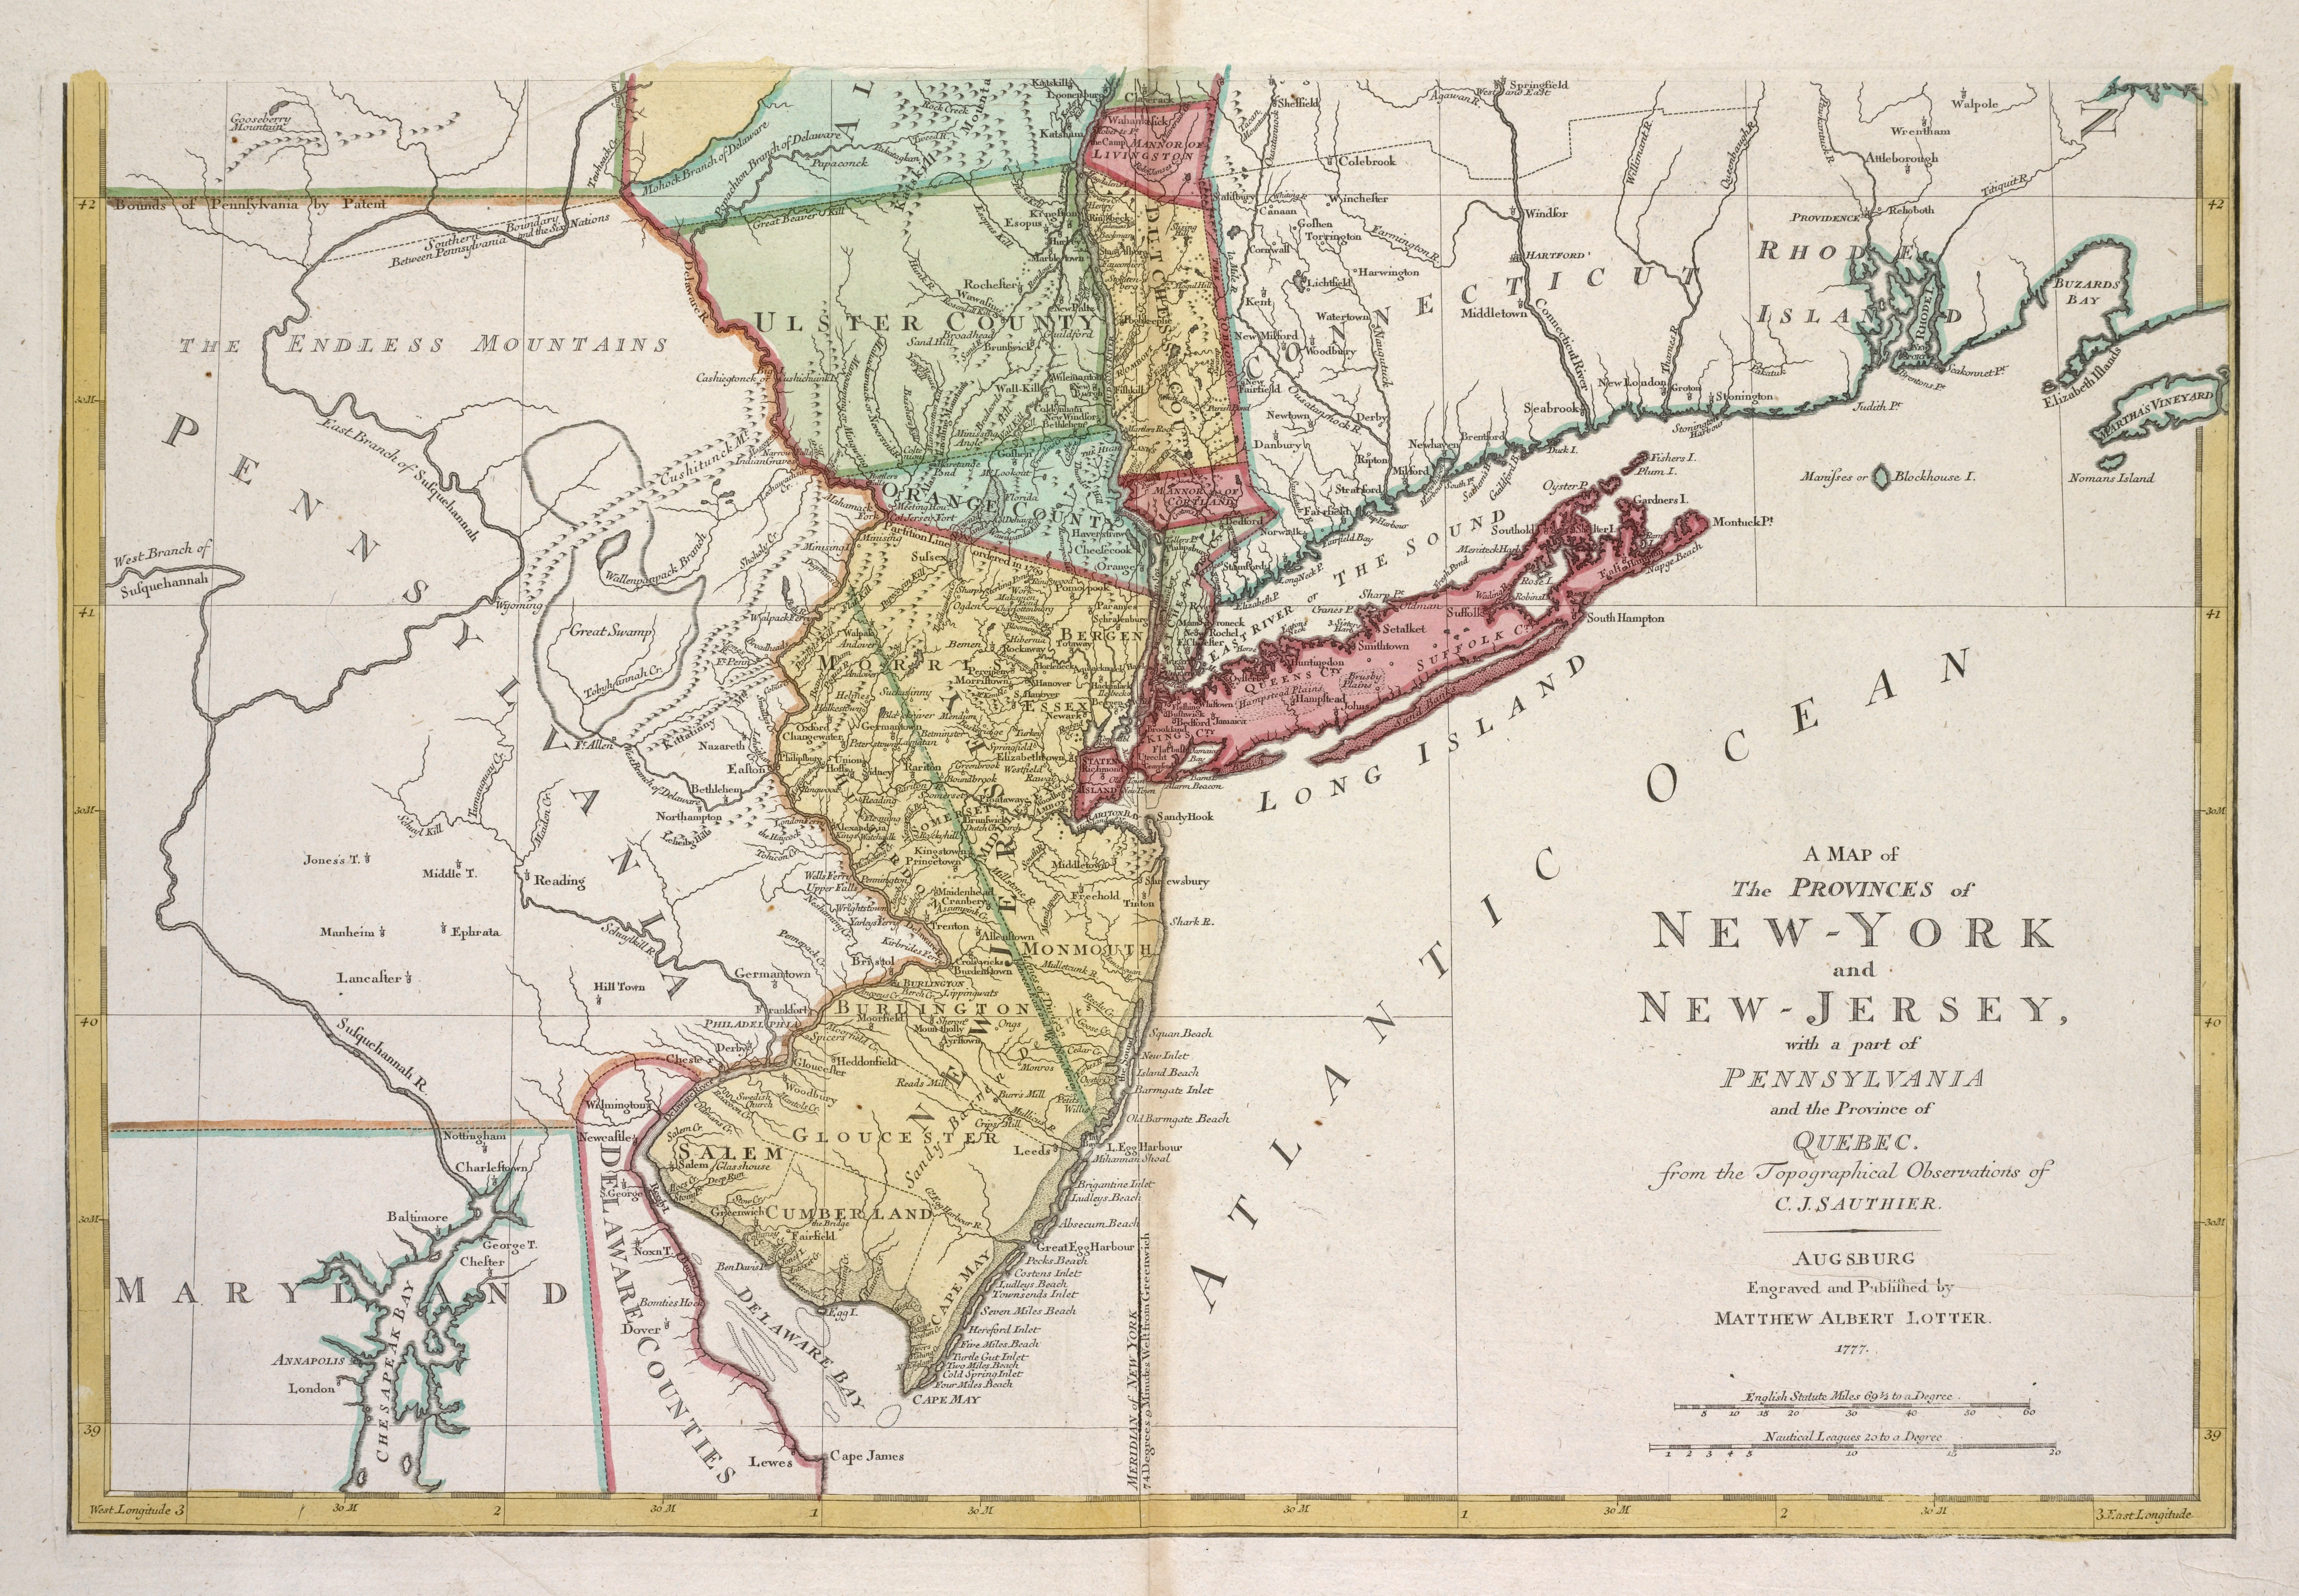 Map Of New York Pennsylvania And New Jersey.File A Map Of The Provinces Of New York And New Jersey With A Part